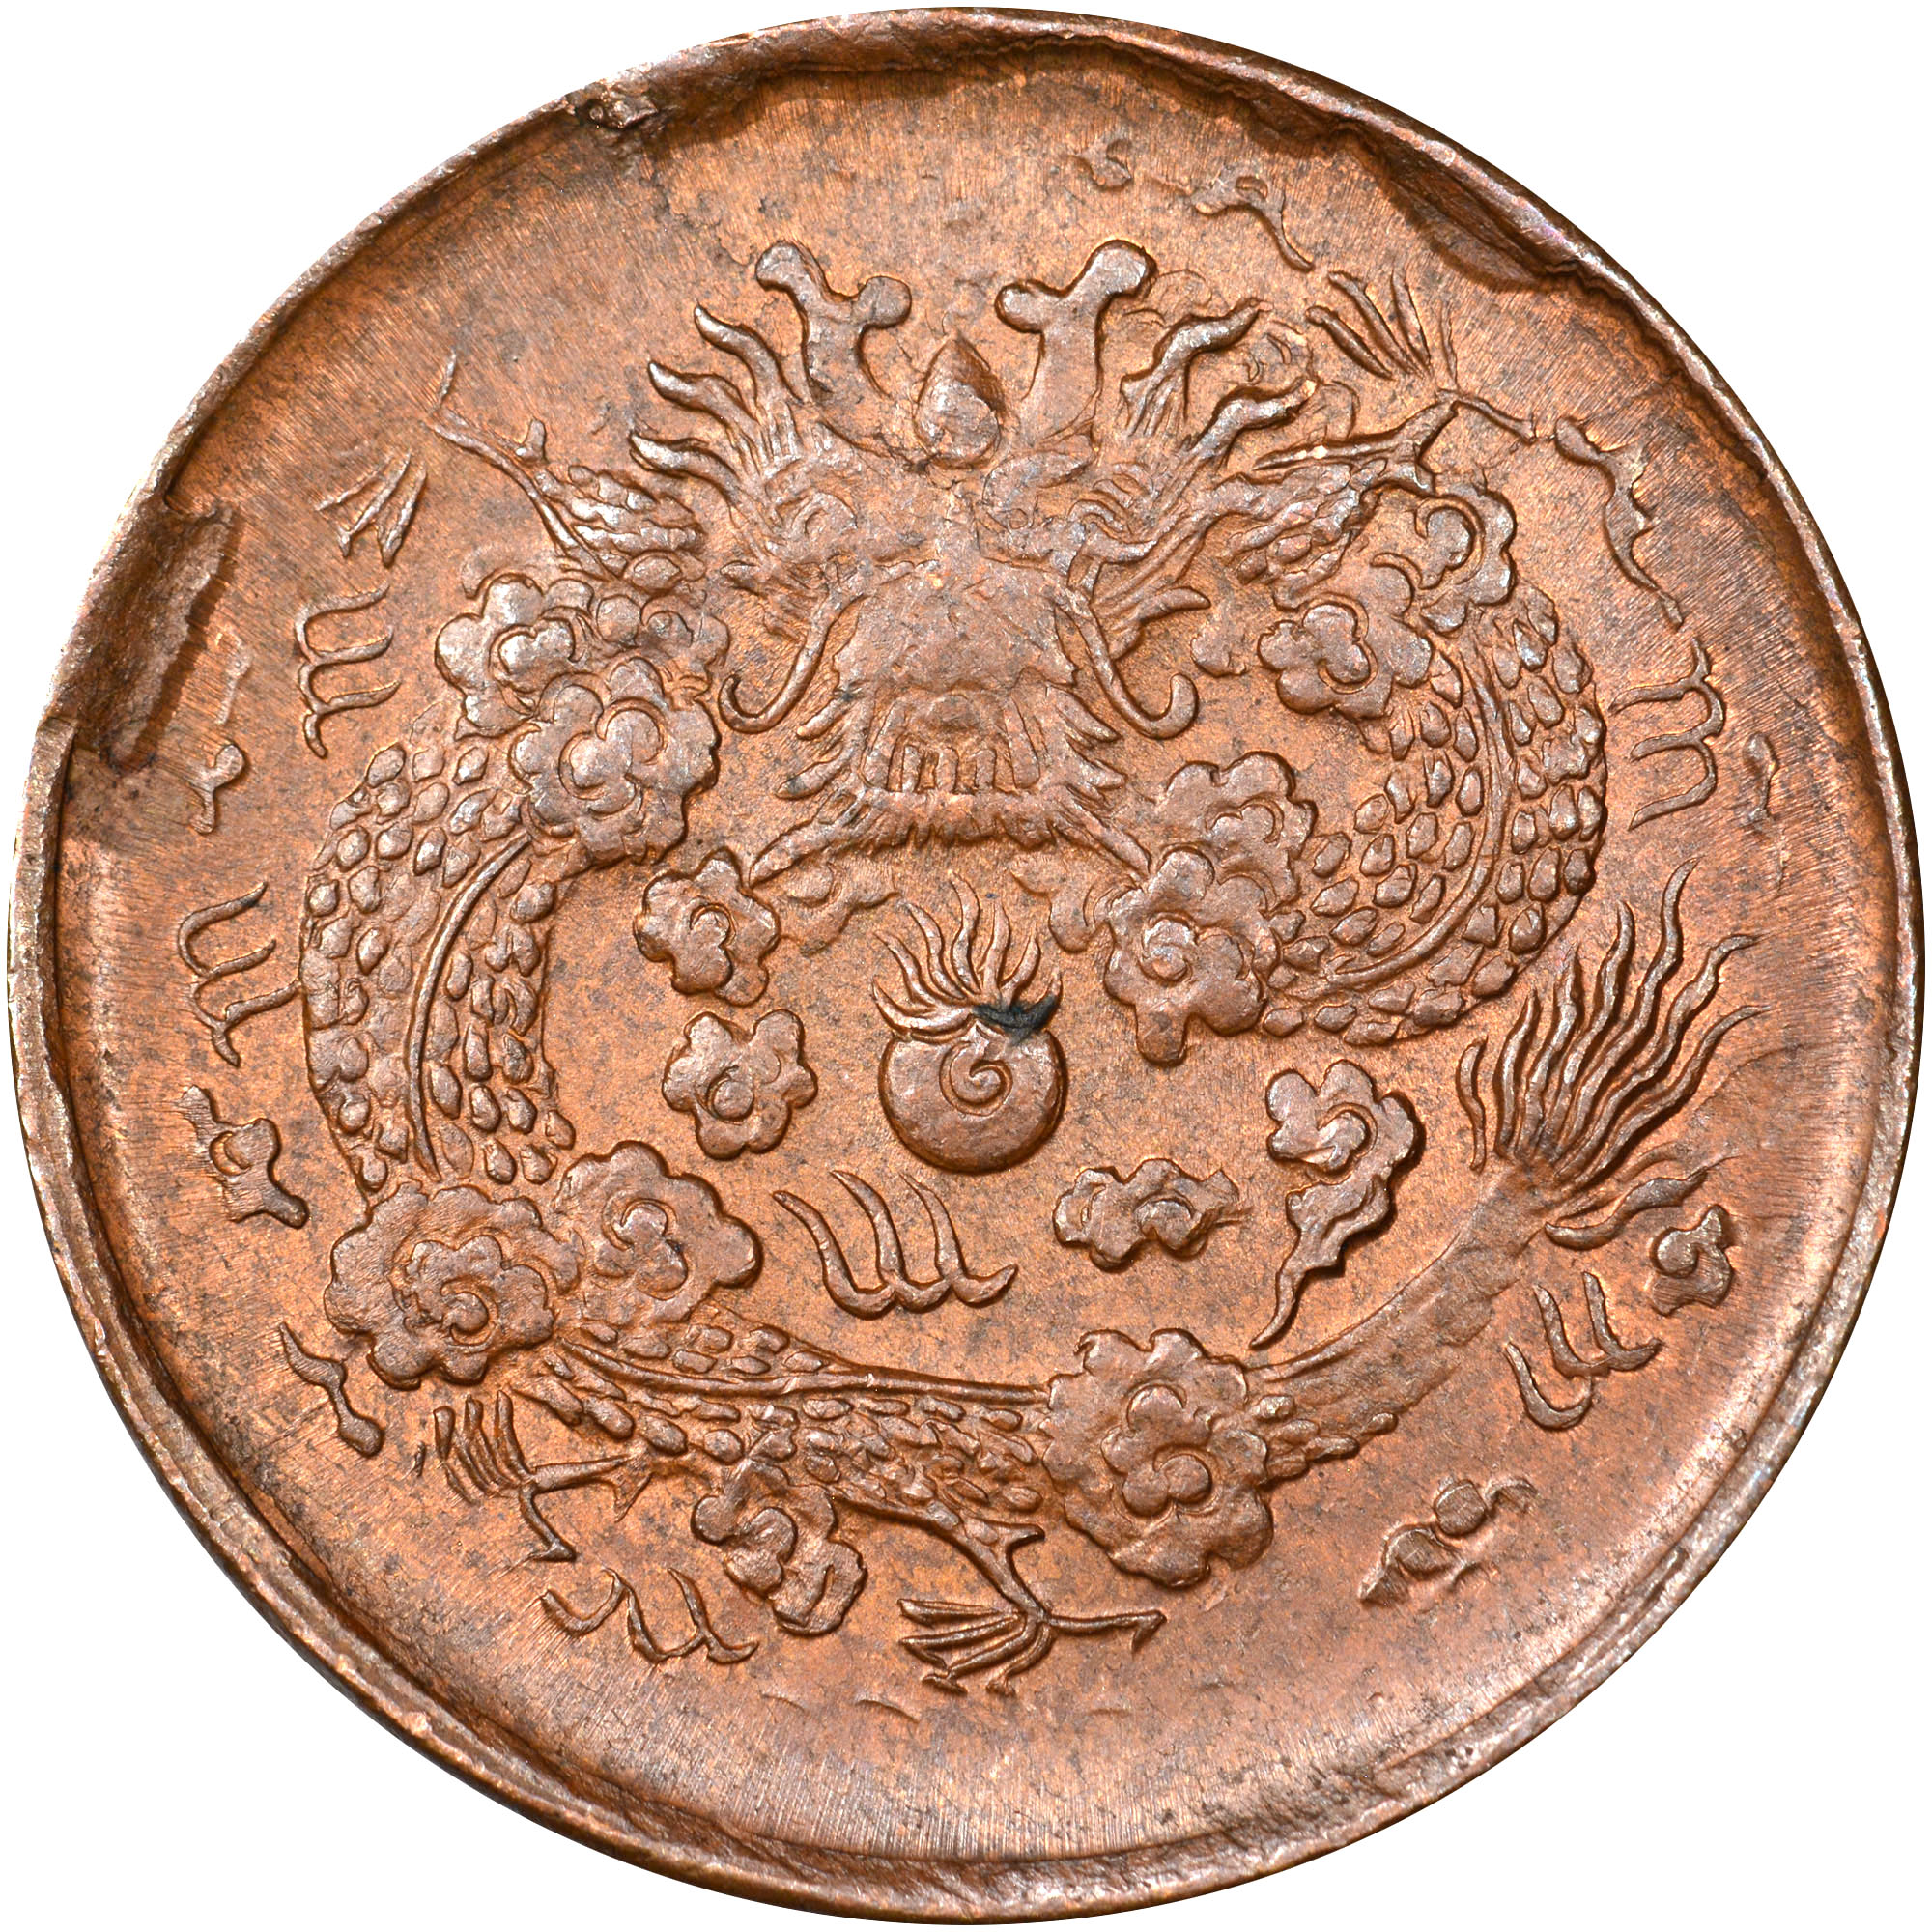 1905-1906 CHINA EMPIRE 2 Cash reverse